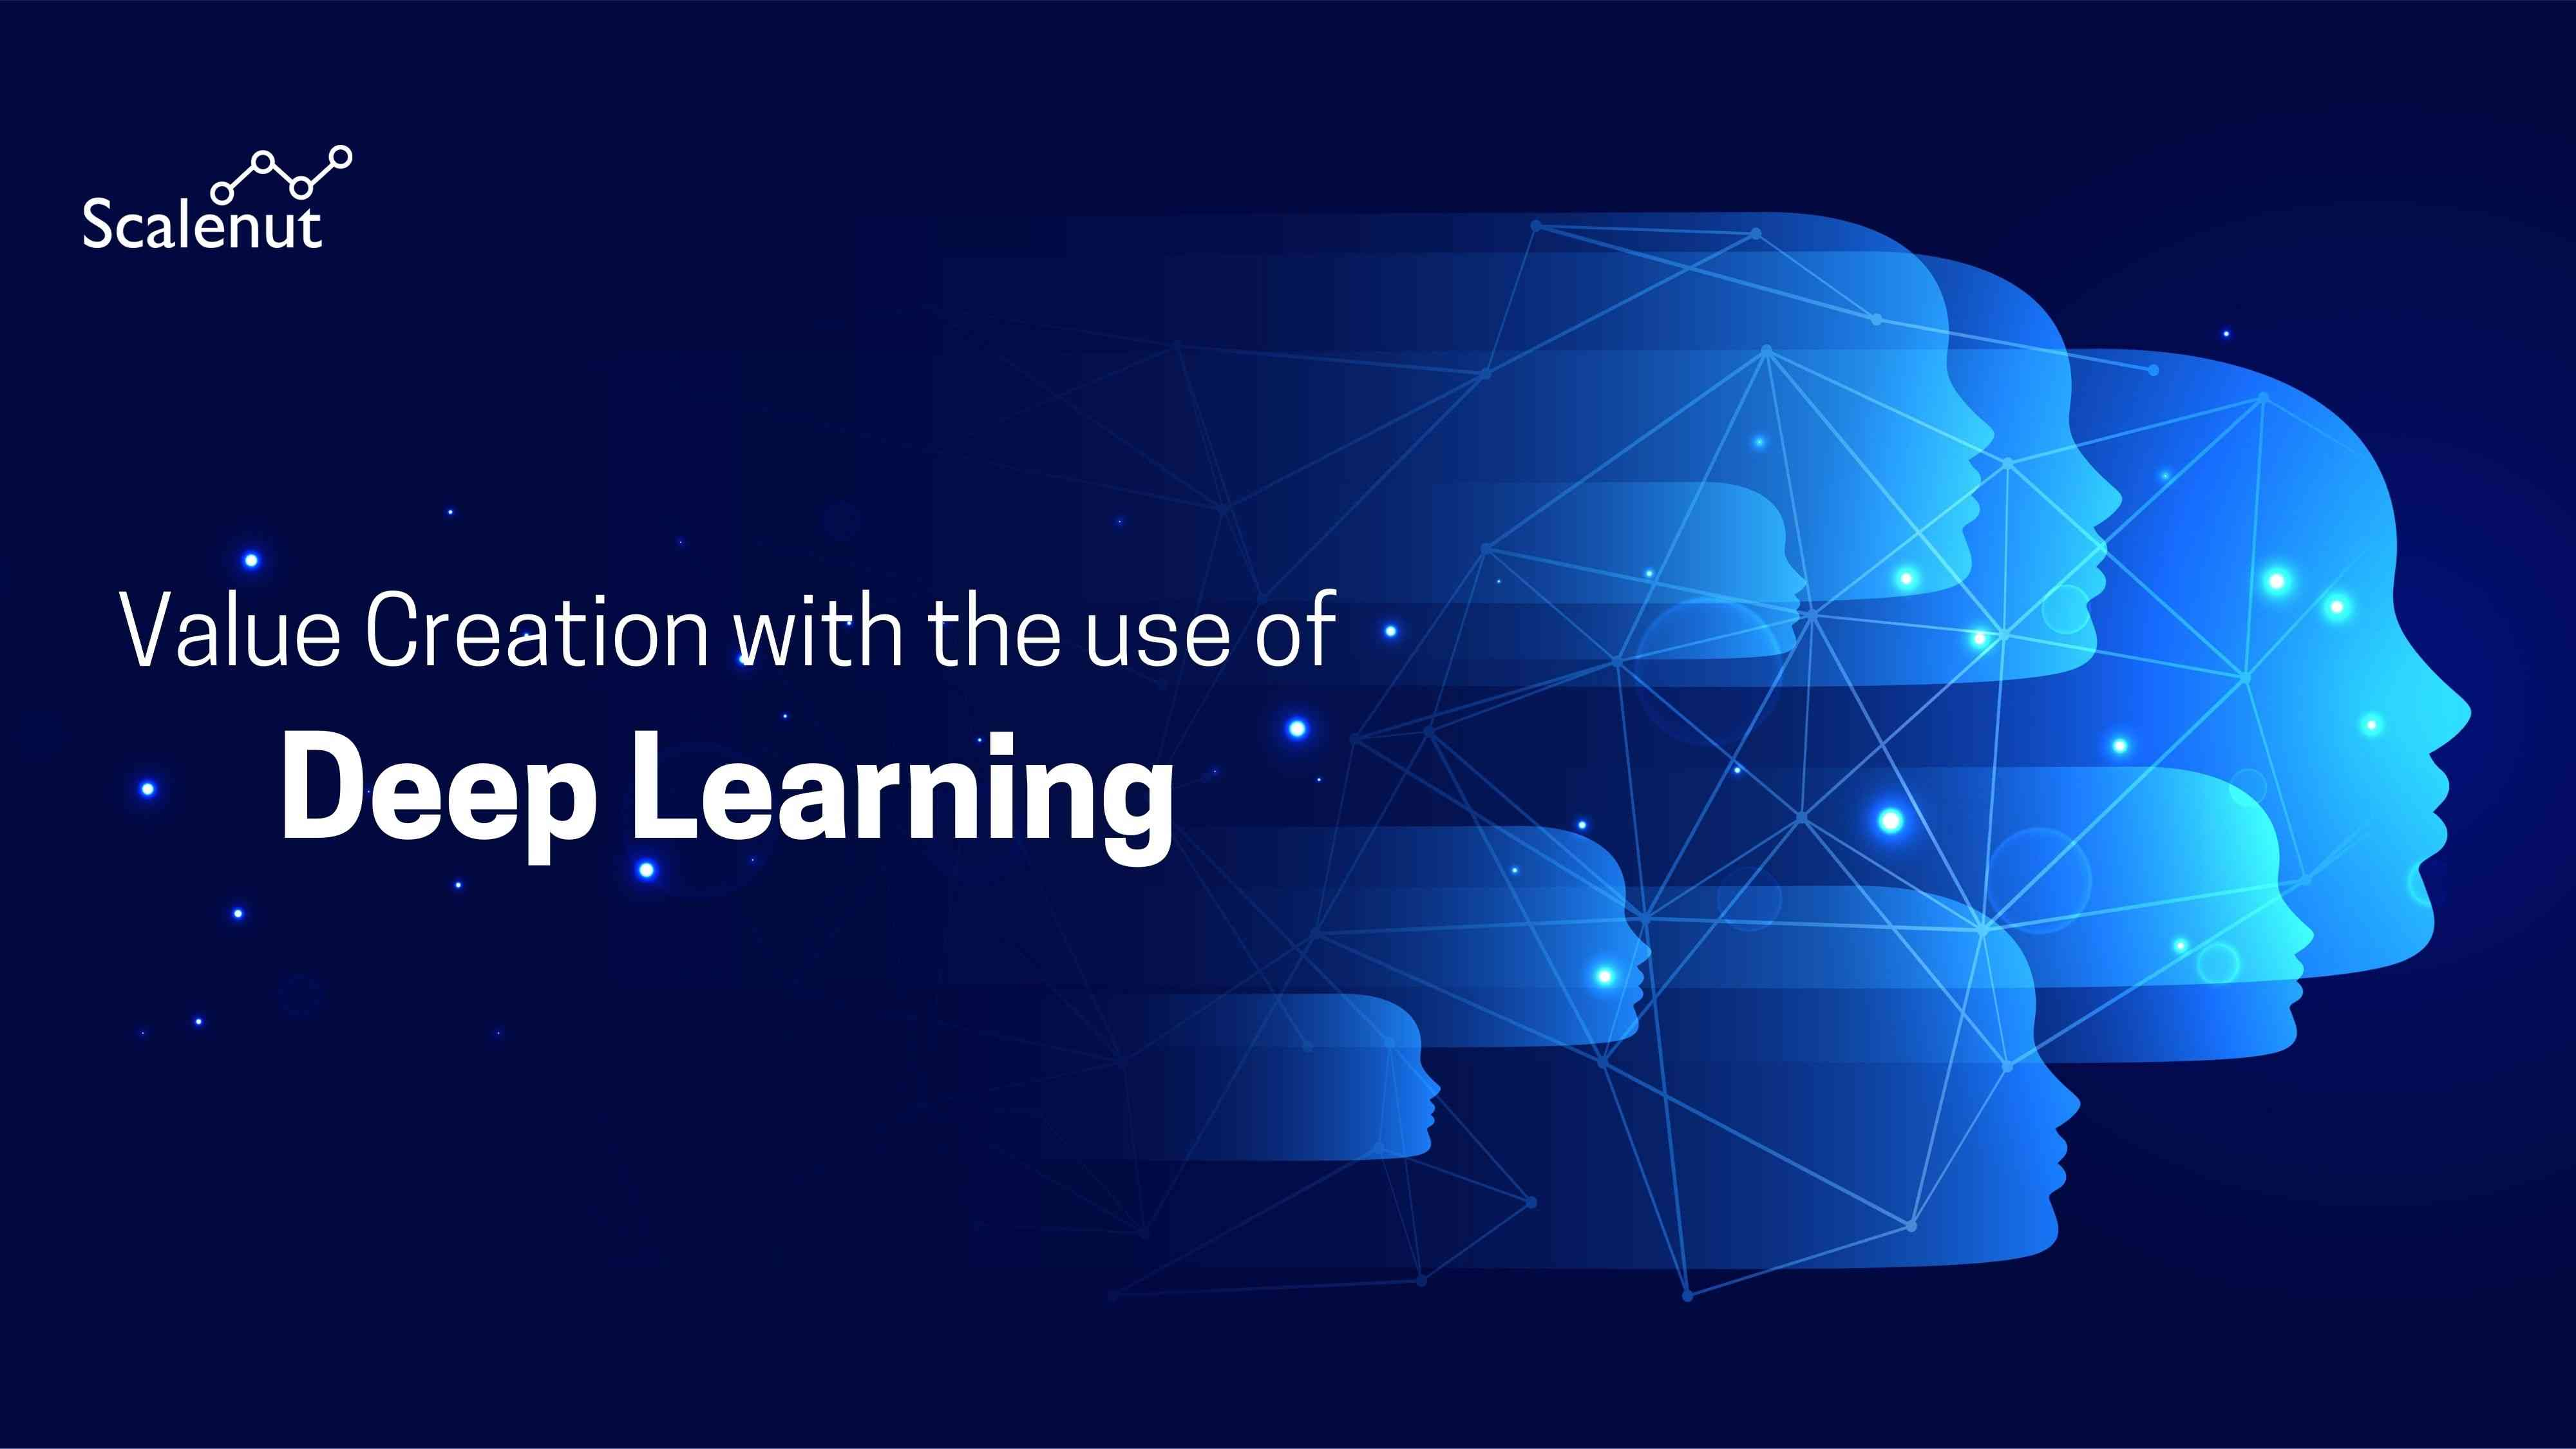 What is an example of value created through the use of Deep Learning?